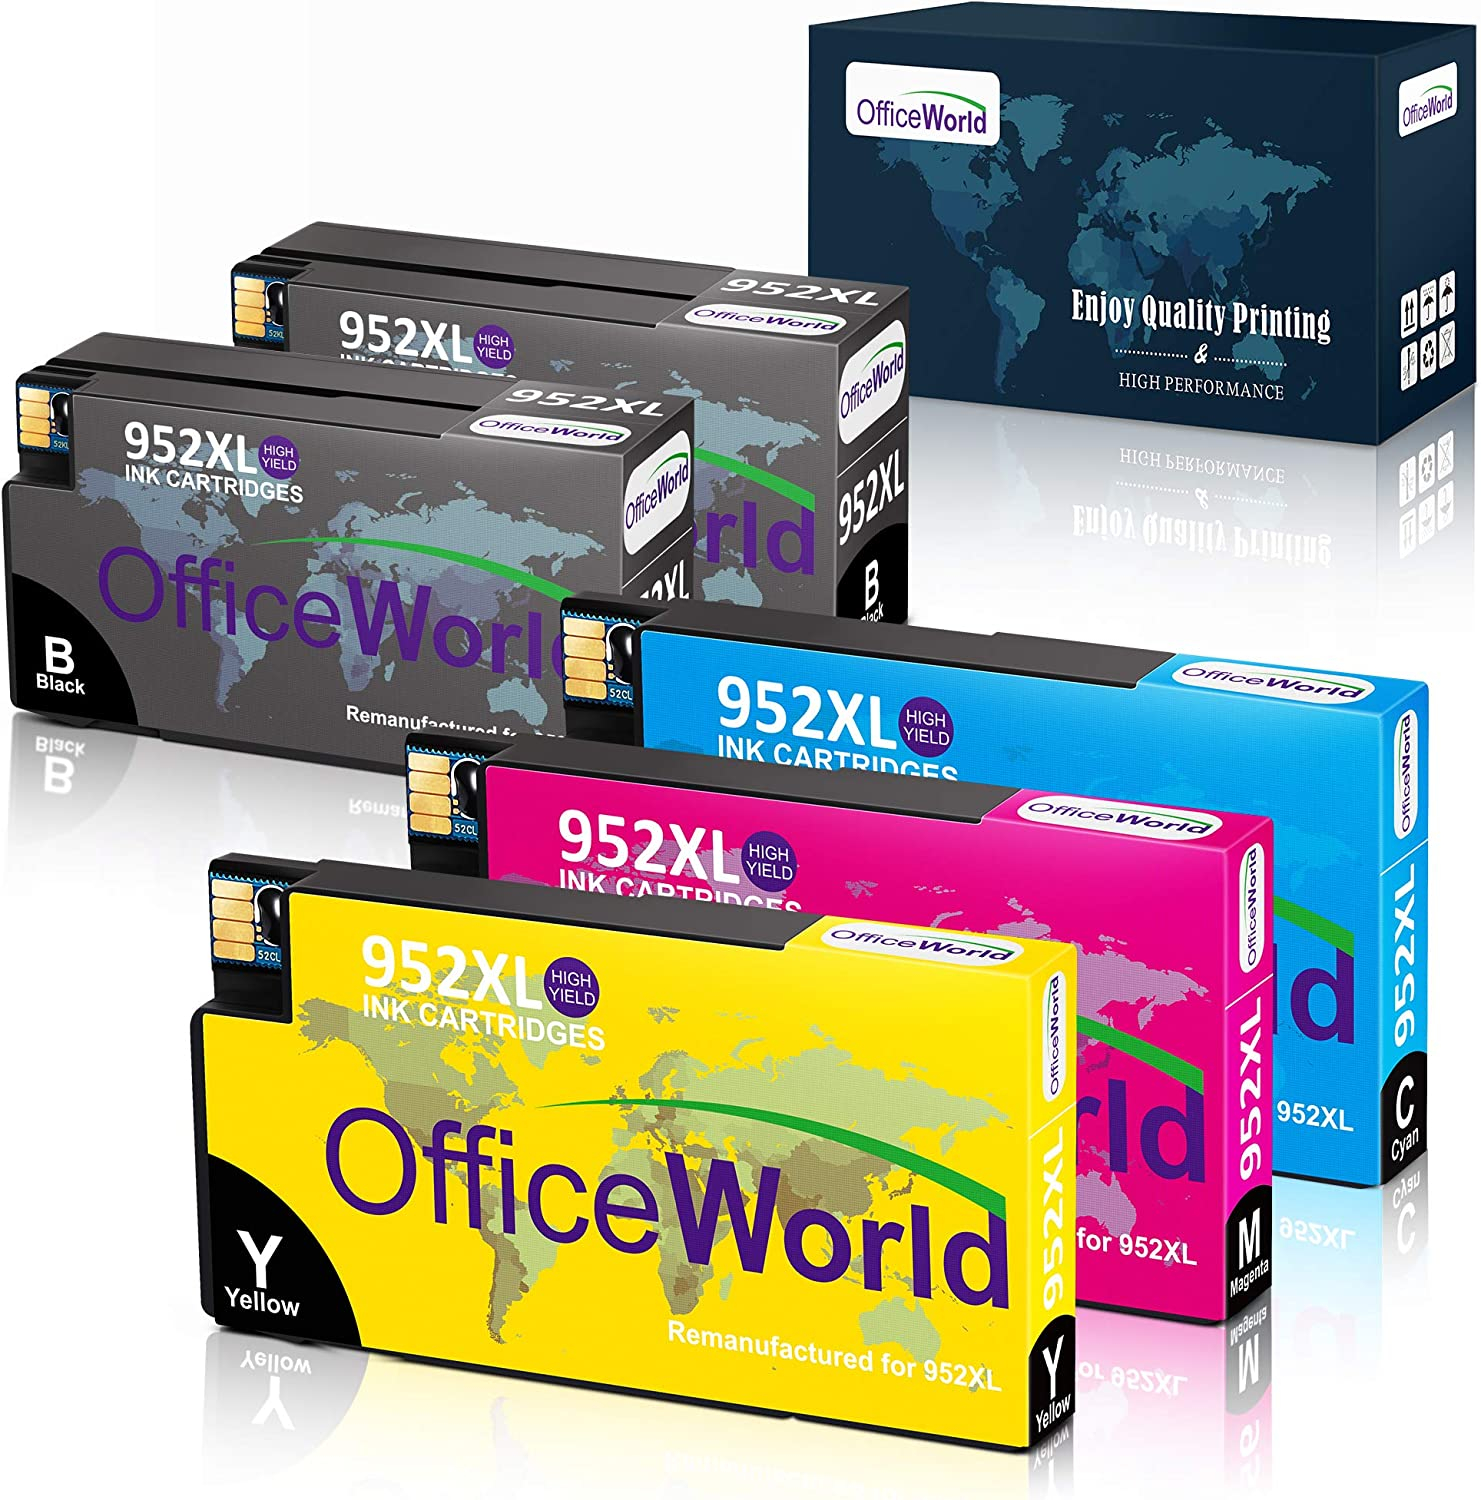 Office World 5 Pack Compatible 952 Ink Cartridge Replacement for HP 952 952XL High Yield Ink Cartridges, Work with OfficeJet Pro 8710 8715 8720 8740 7740 8210 8730 8702 8725 8216 Printer